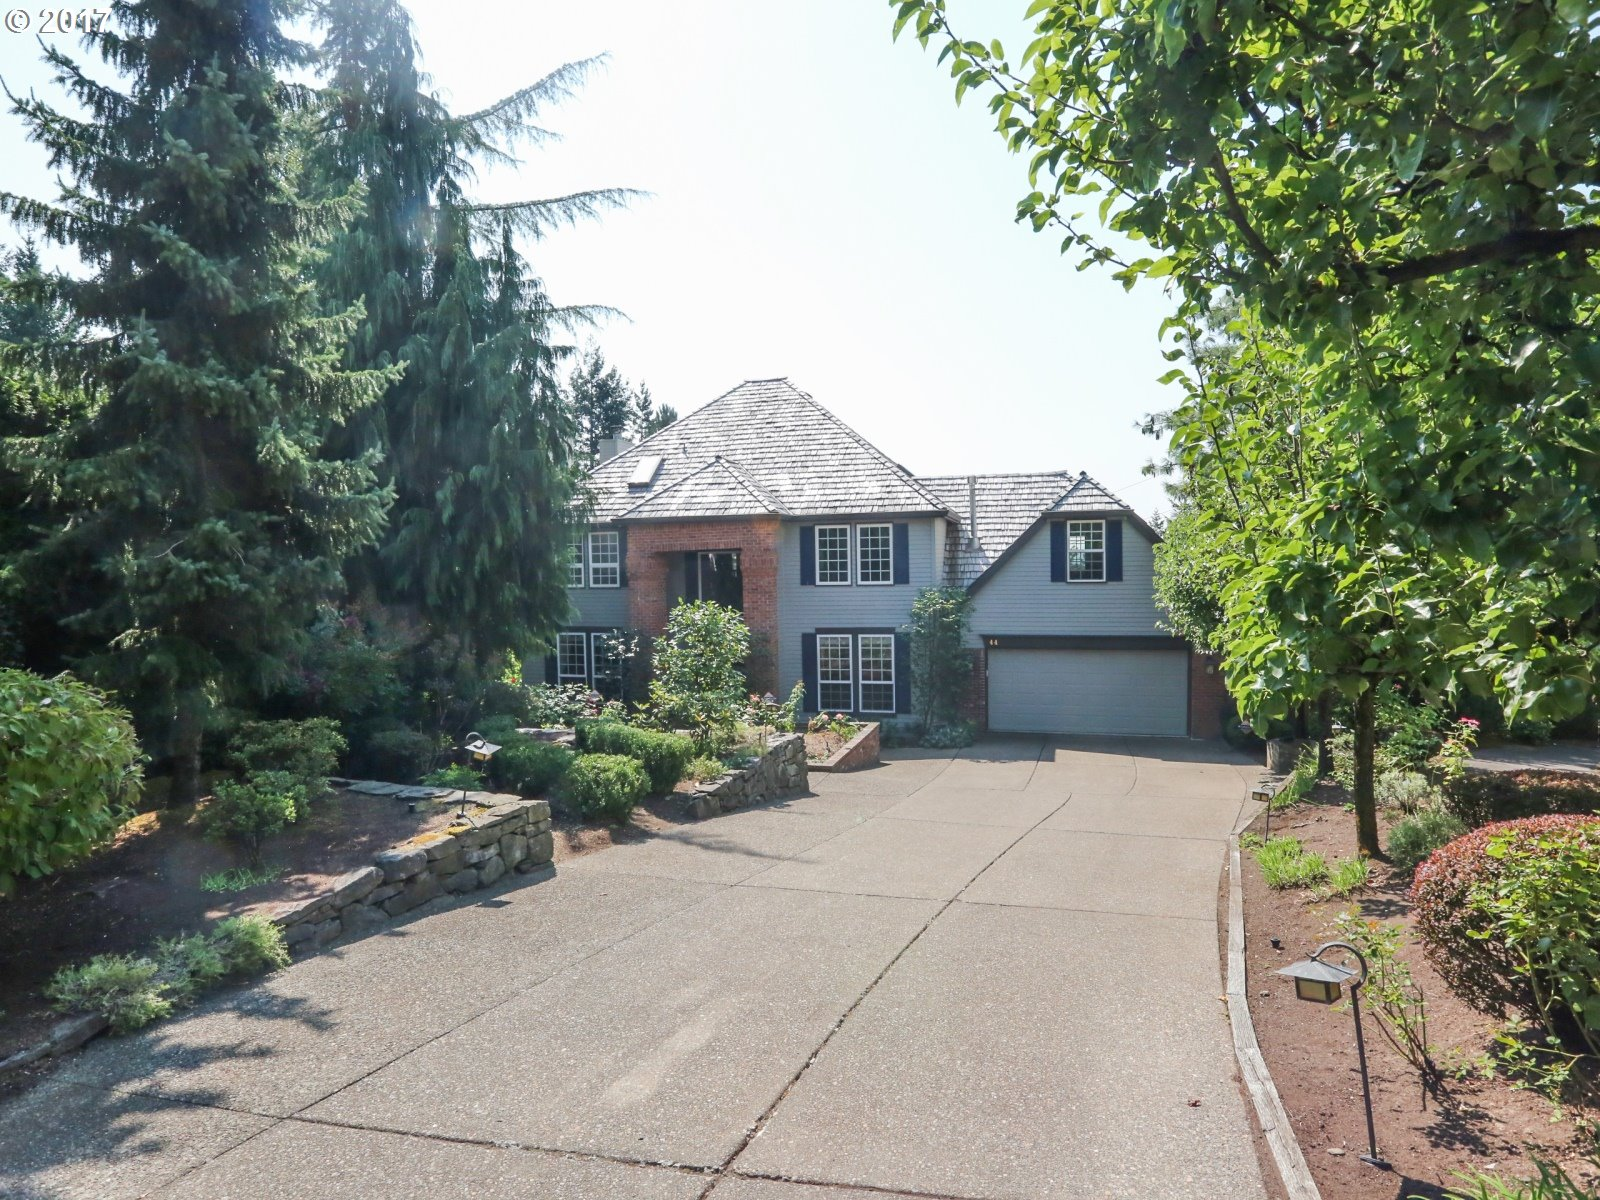 44 Nova CT, Lake Oswego, OR 97035